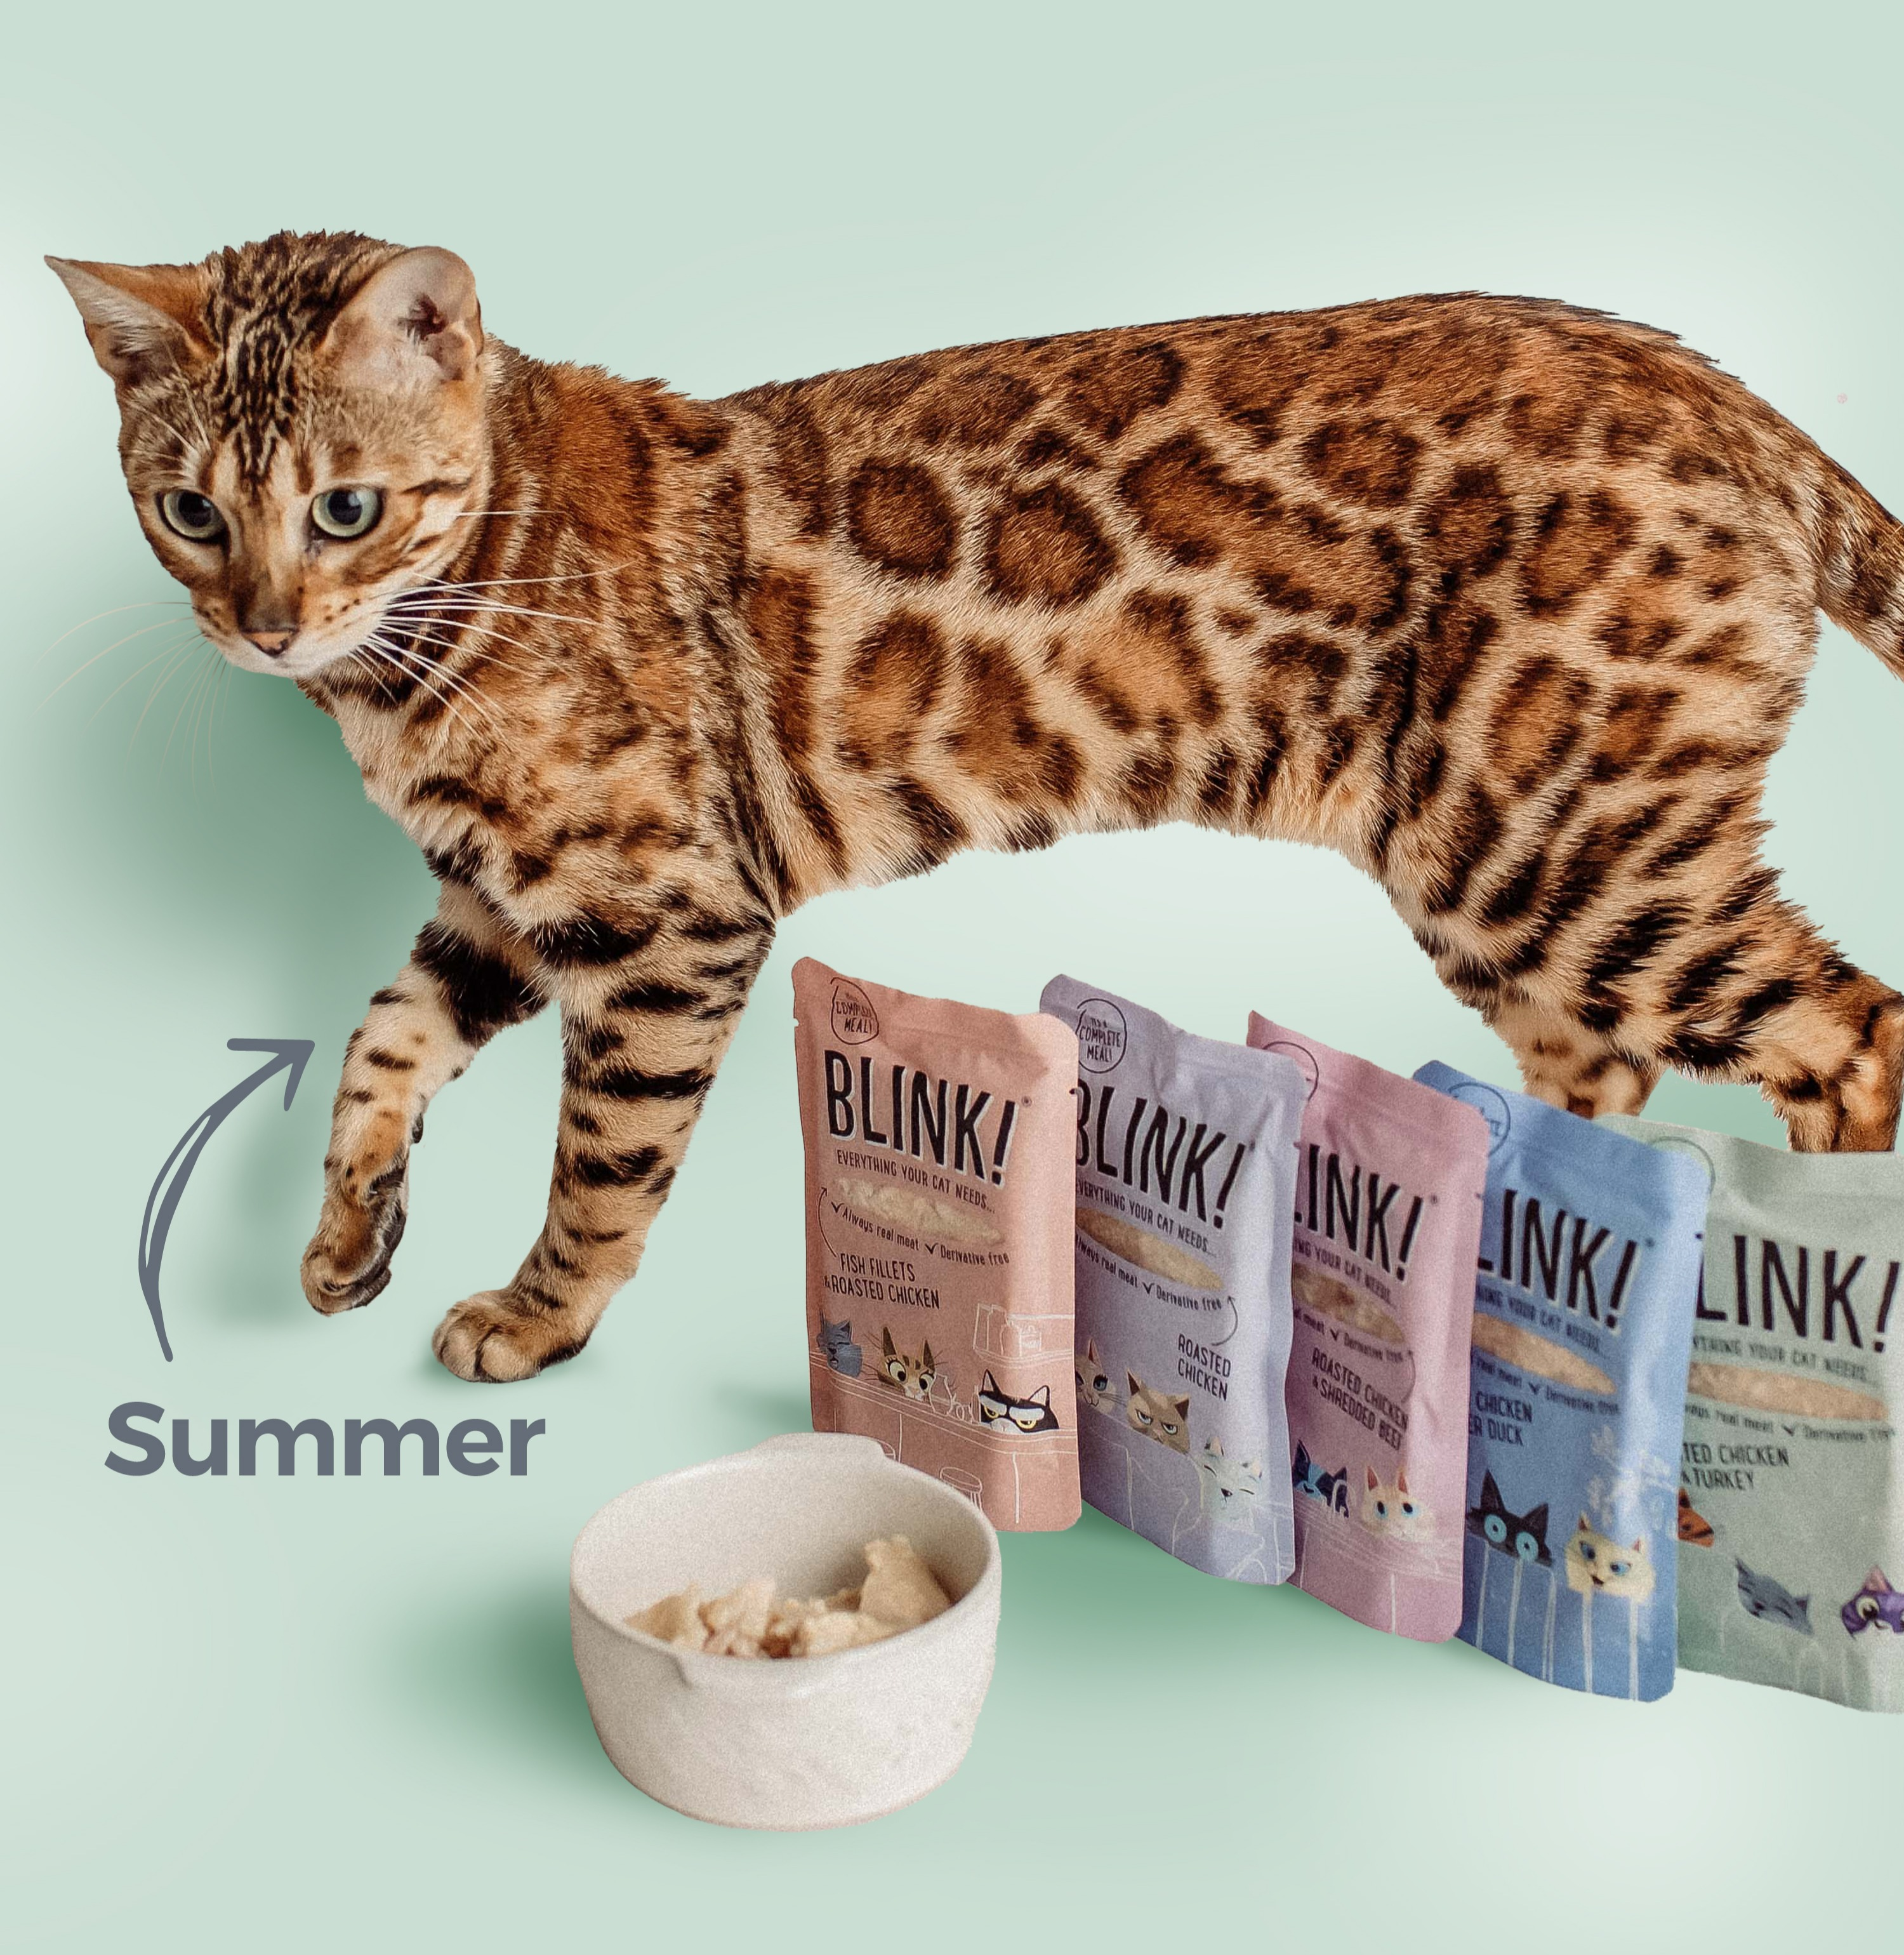 Leopard print cat with Blink food